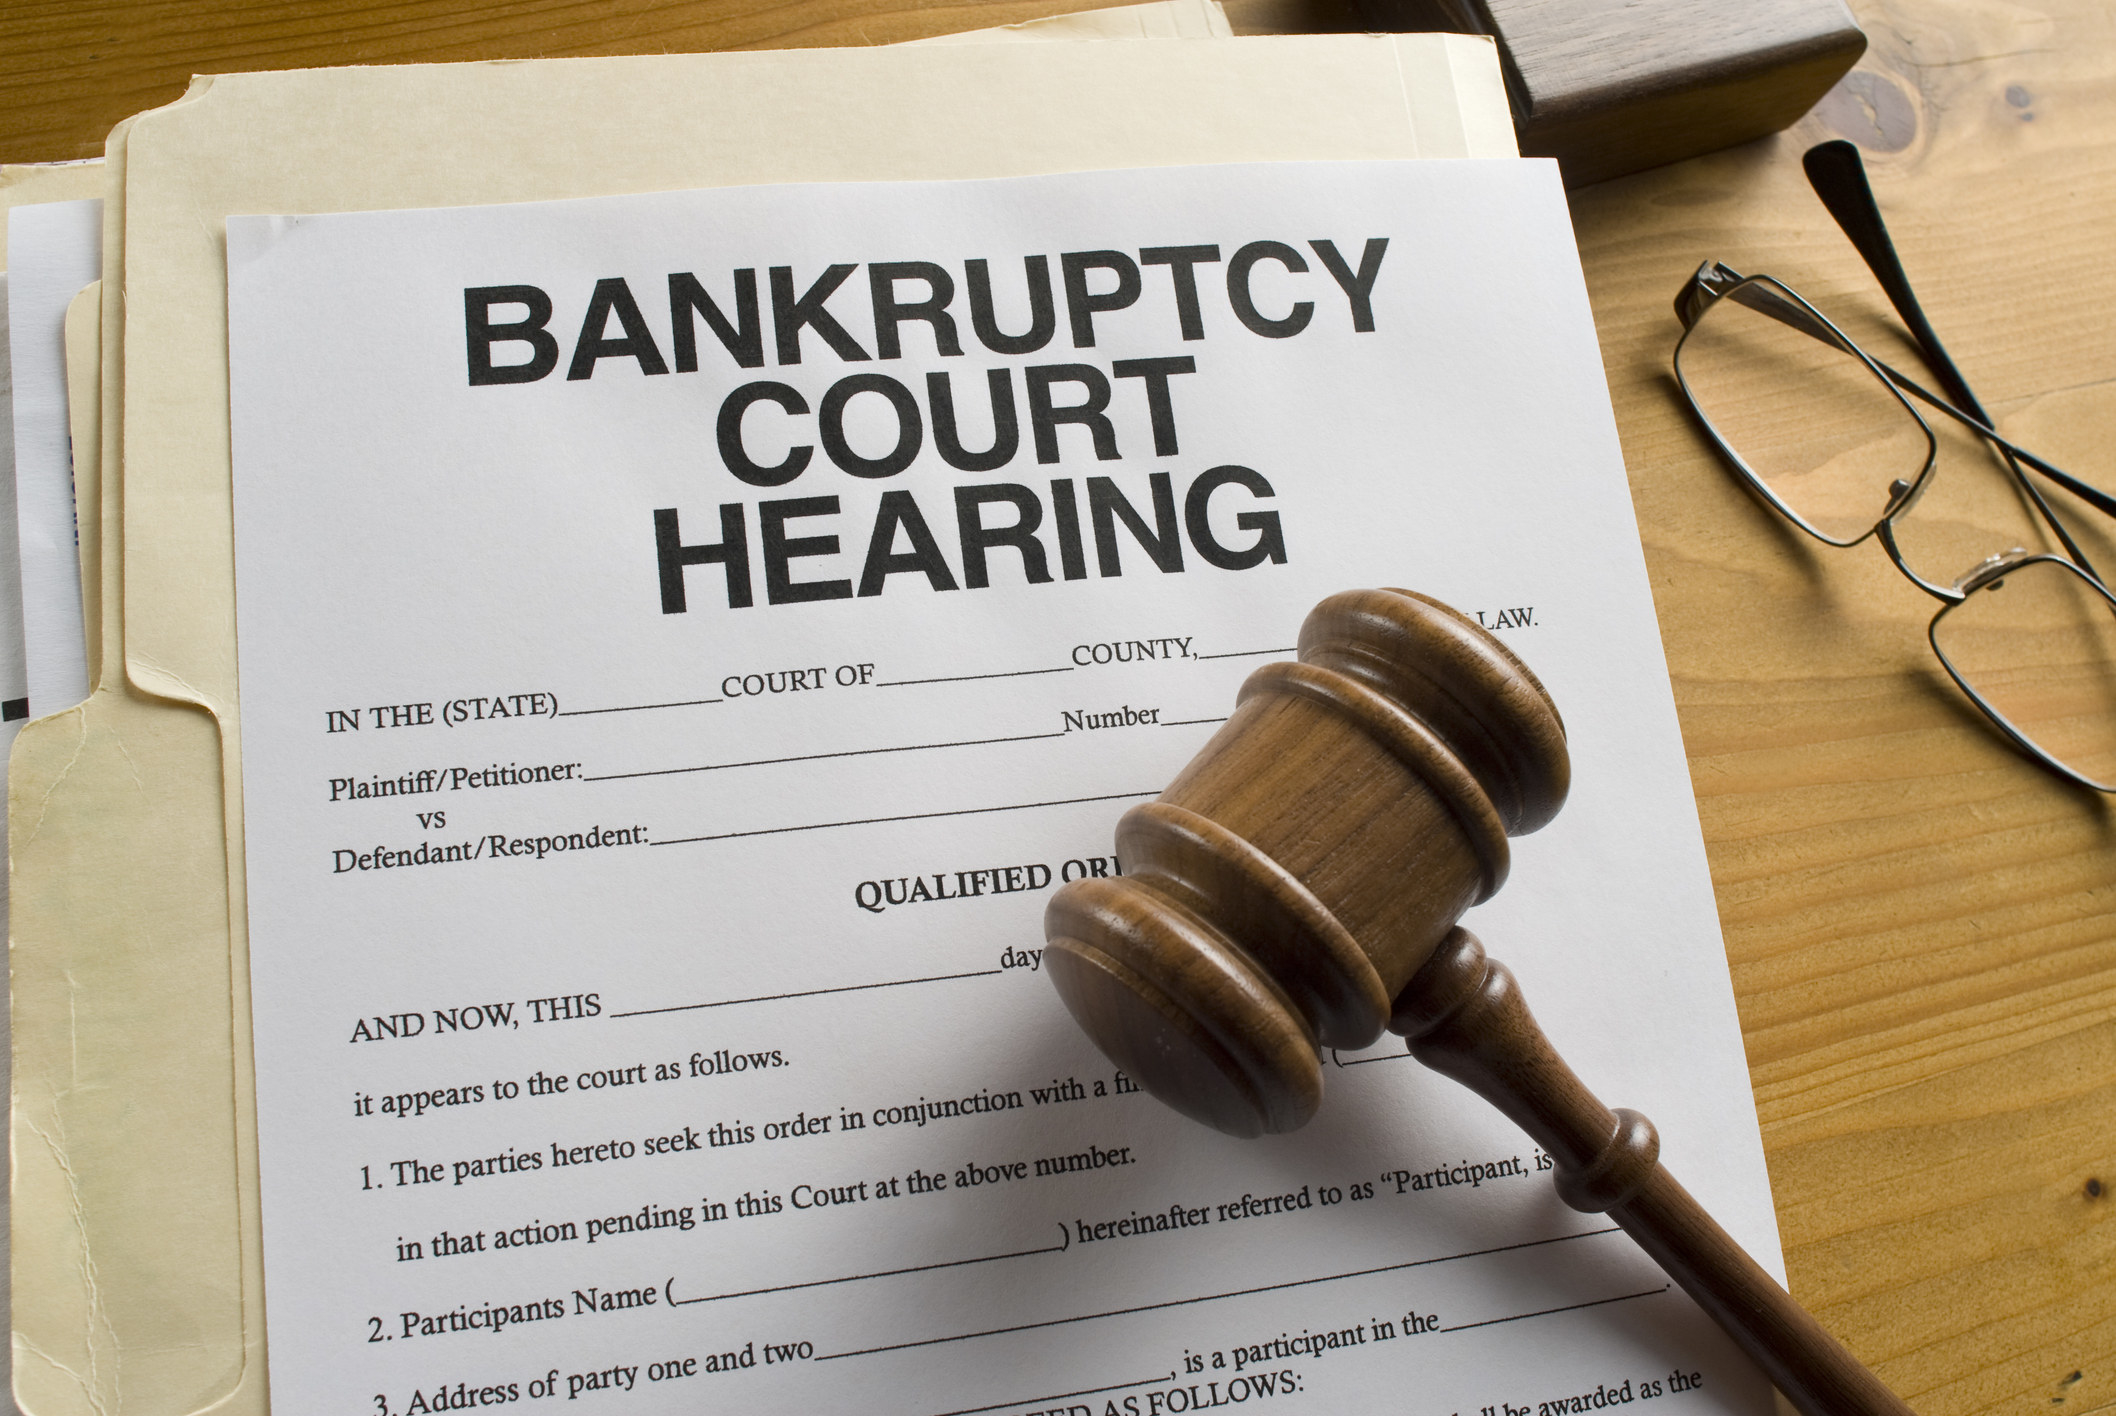 Paperwork for bankruptcy court